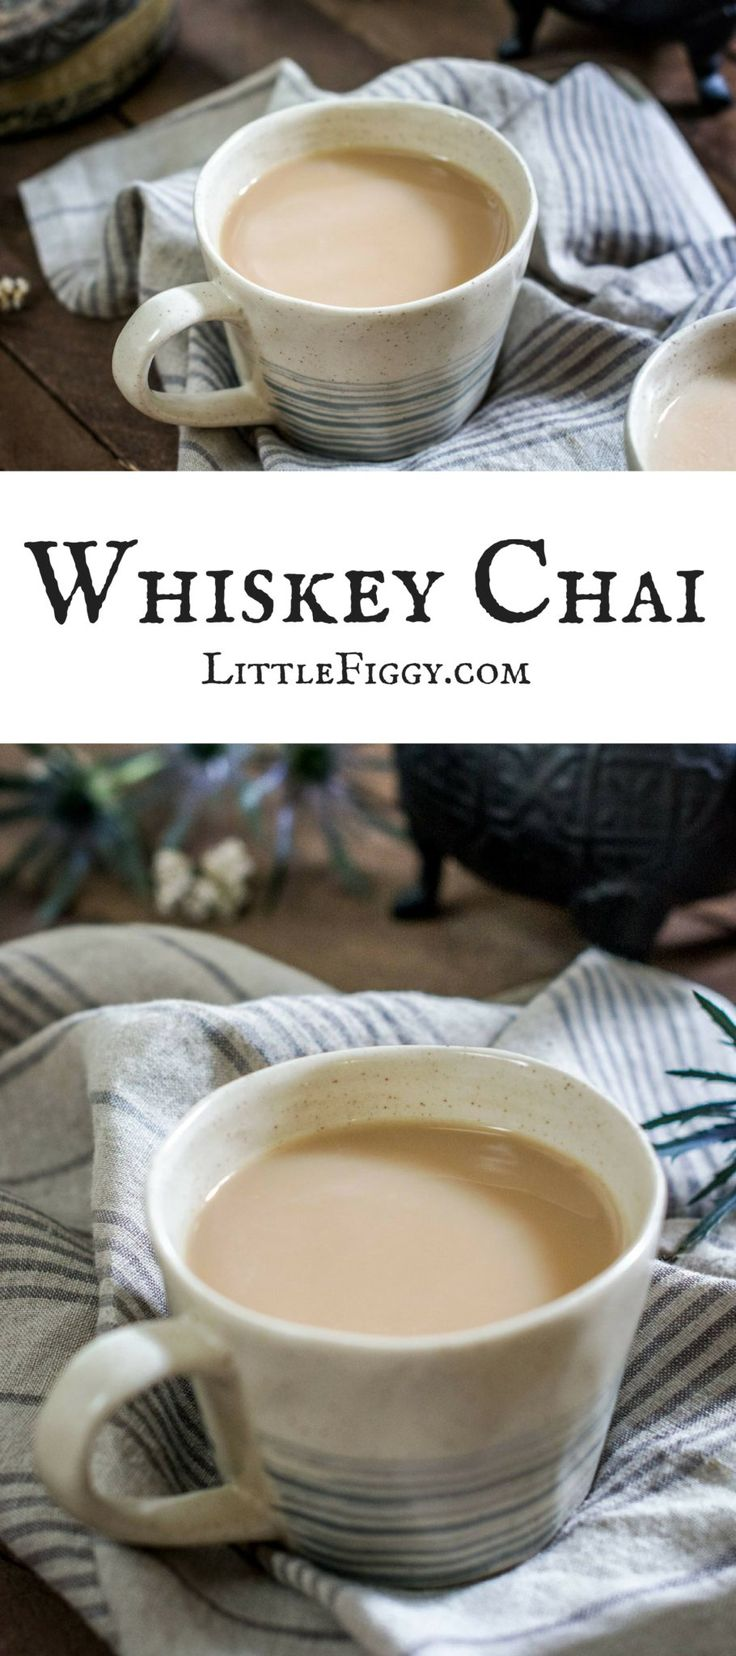 Stay warm with this easy to make Chai Tea with a wee bit of Whiskey (can definitely be made without alcohol if preferred). The DIY Chai Tea Blend is full of gorgeous spices including cinnamon, cardamom, cloves and more. Get the recipe from Little Figgy Food